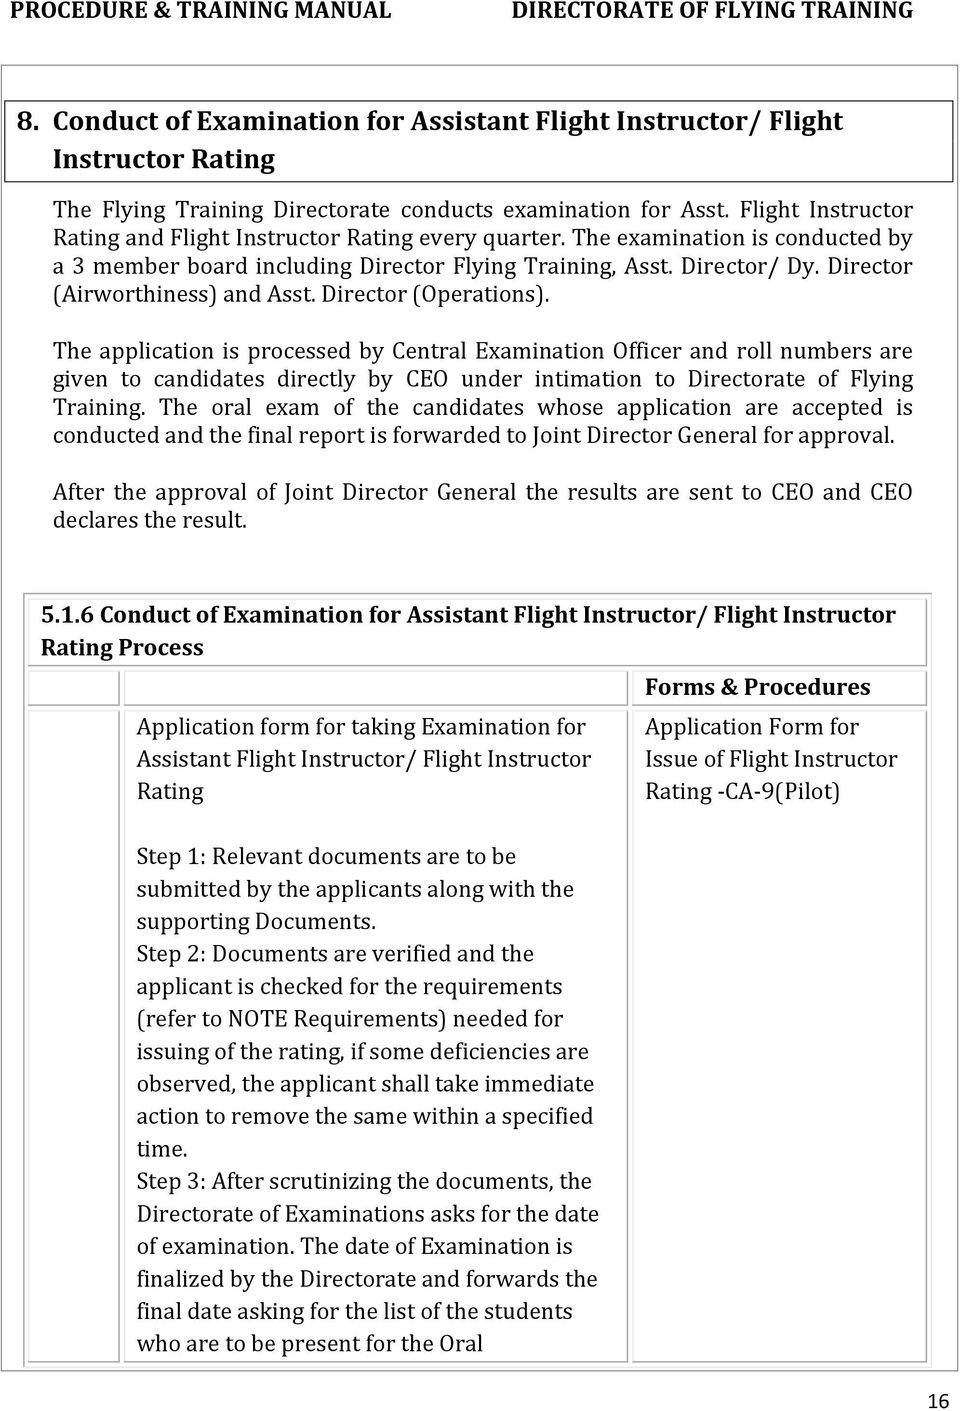 Director (Airworthiness) and Asst. Director (Operations).